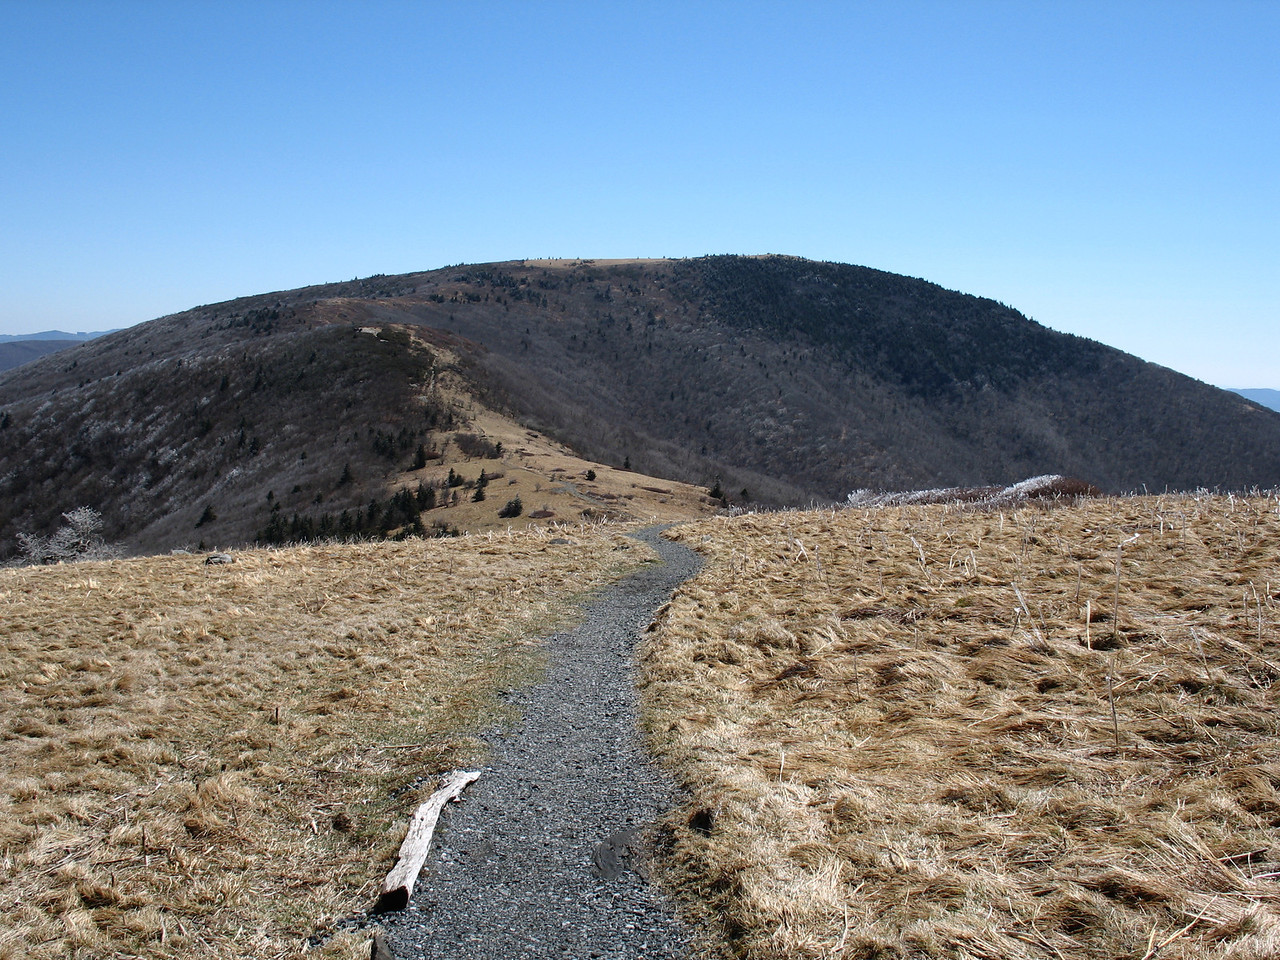 The nice gravel trail over Round Bald hints at the crowds that must visit here in the warmer months.